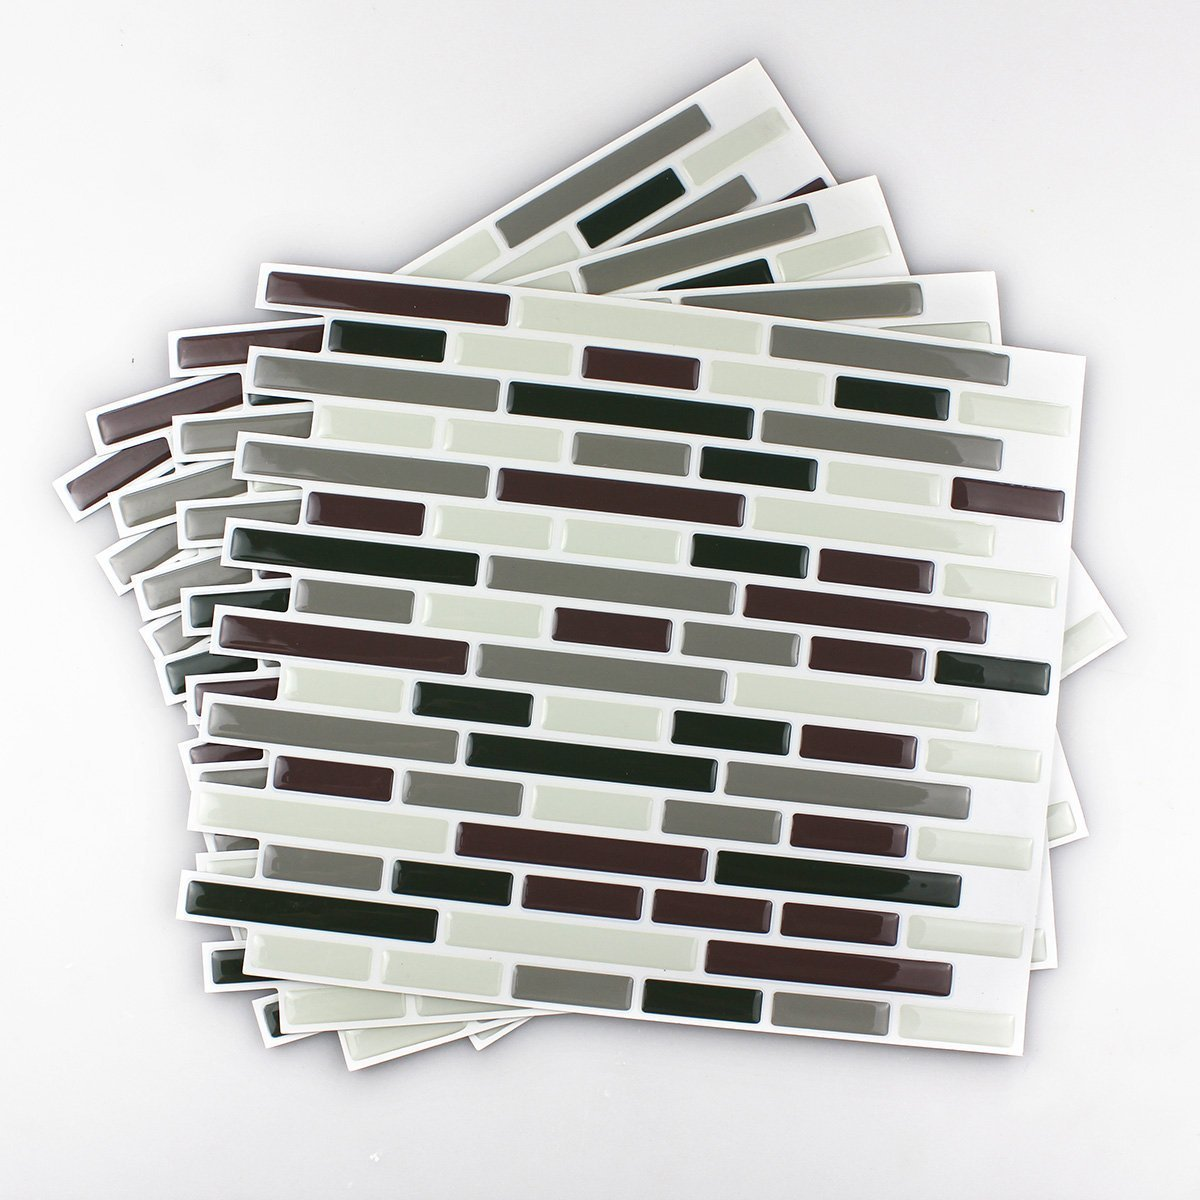 Amazon fancy fix vinyl peel and stick wall tile for amazon fancy fix vinyl peel and stick wall tile for decorative kitchen bathroom backsplash tiles pack of 4 sheets home kitchen dailygadgetfo Gallery